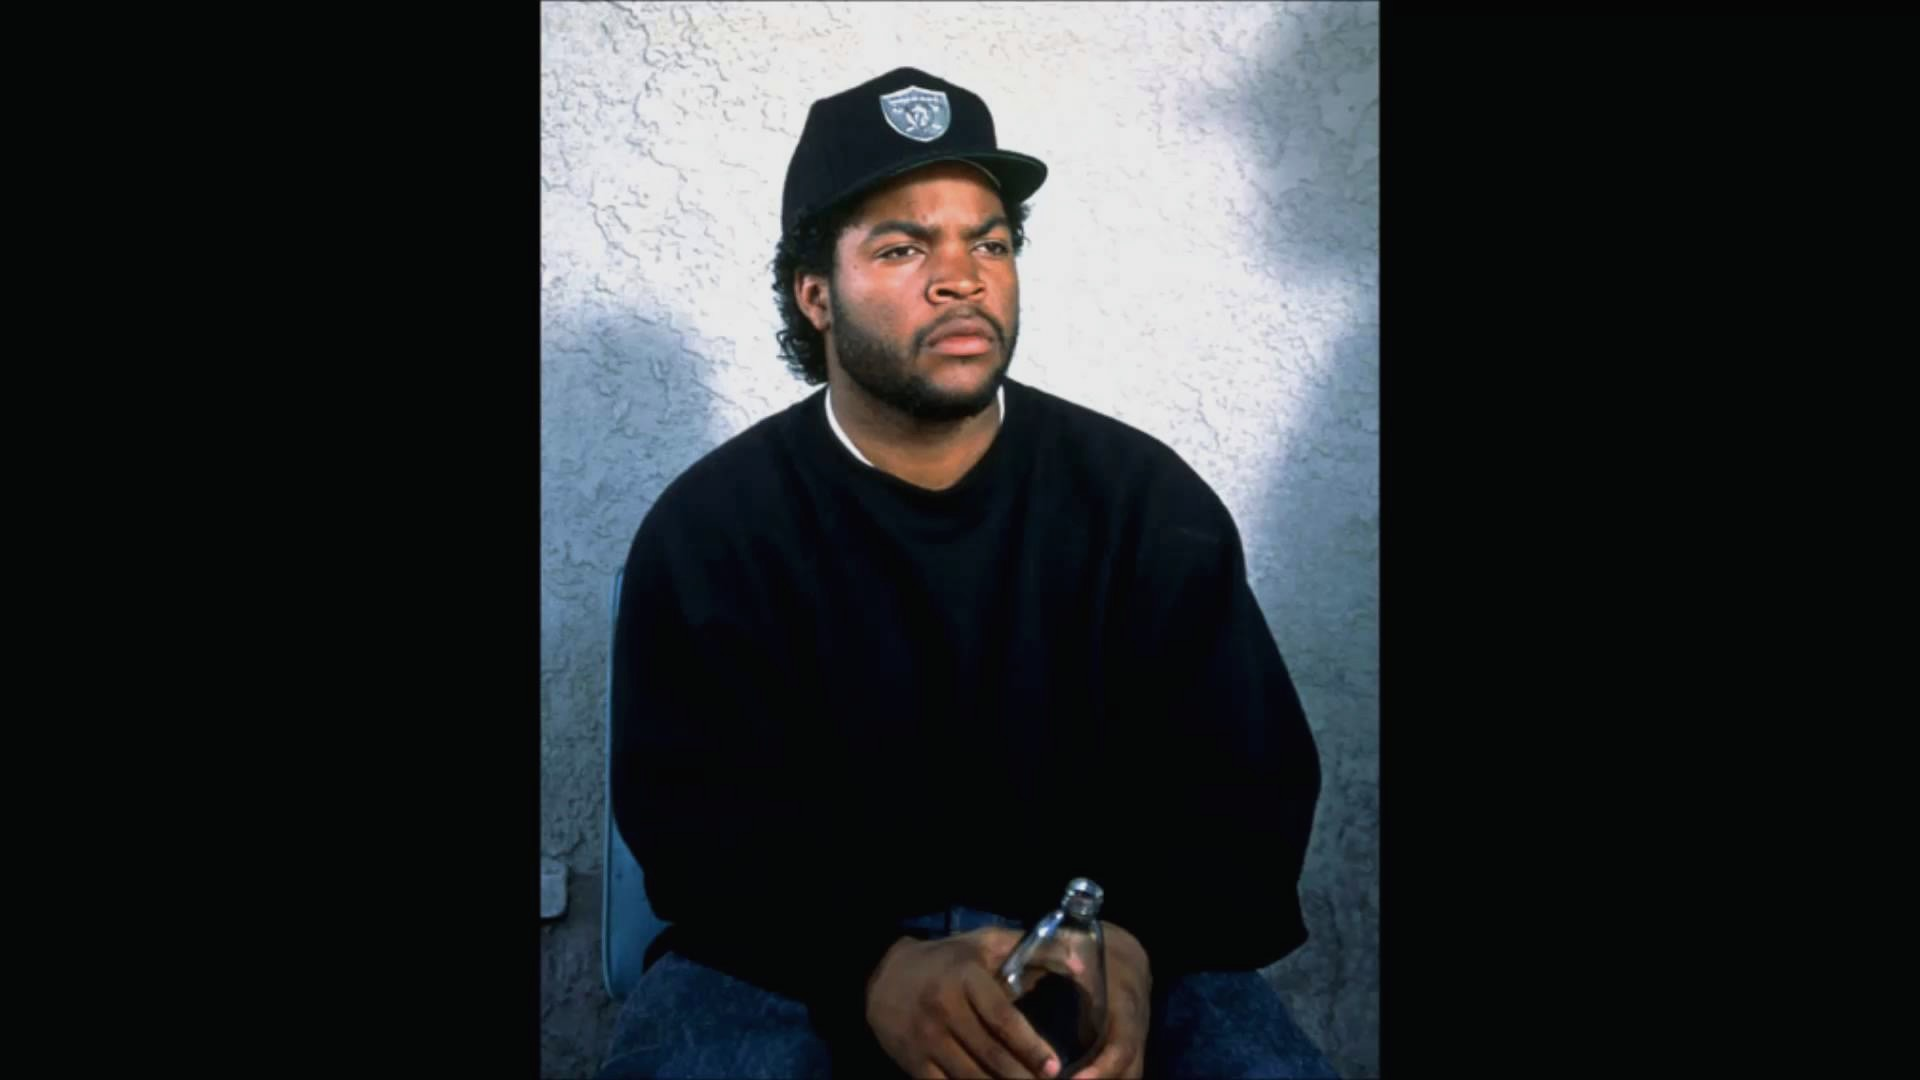 Guns Wallpaper Hd Ice Cube Hd Wallpapers